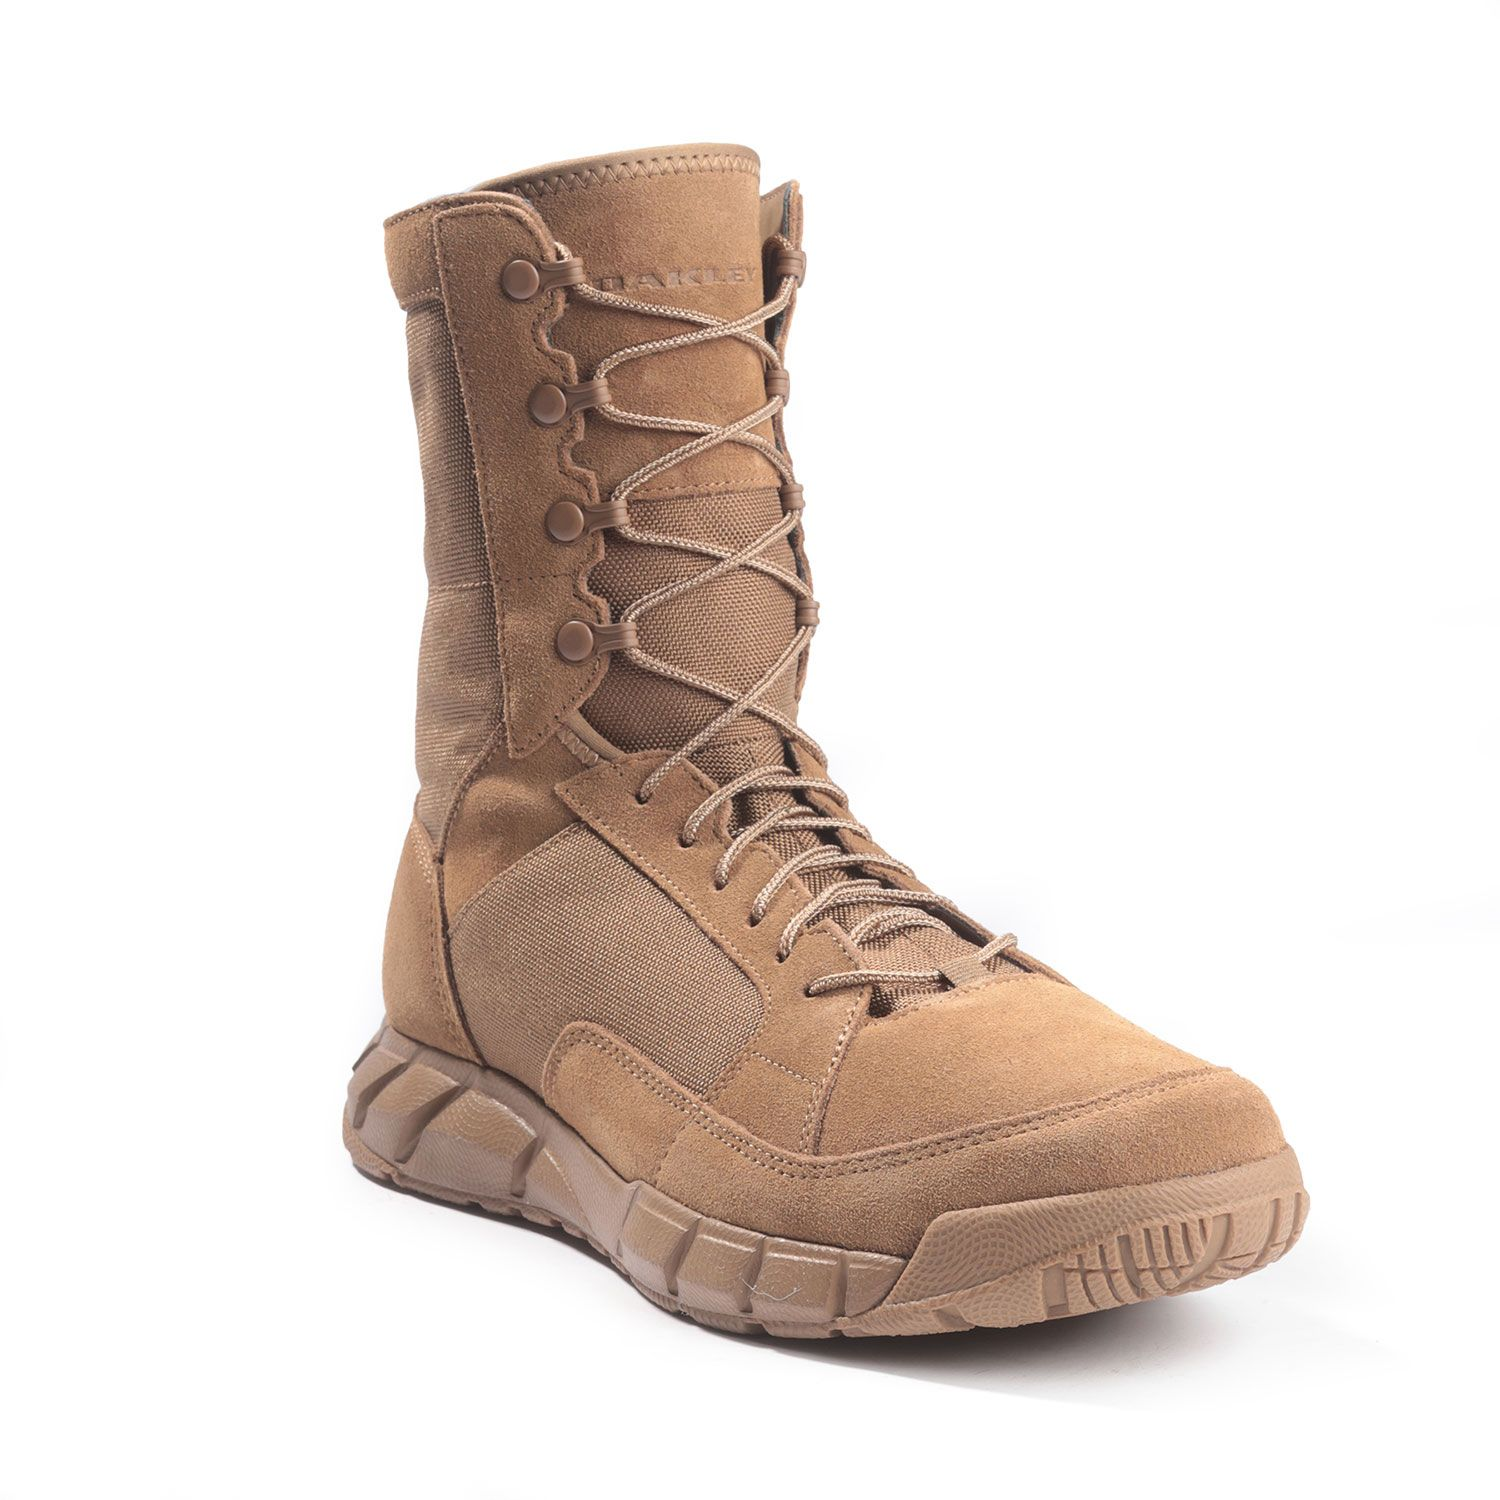 Oakley Light Assault Boot 2 Coyote Sage Tan Army Boot Boots Oakley Boots Army Boot